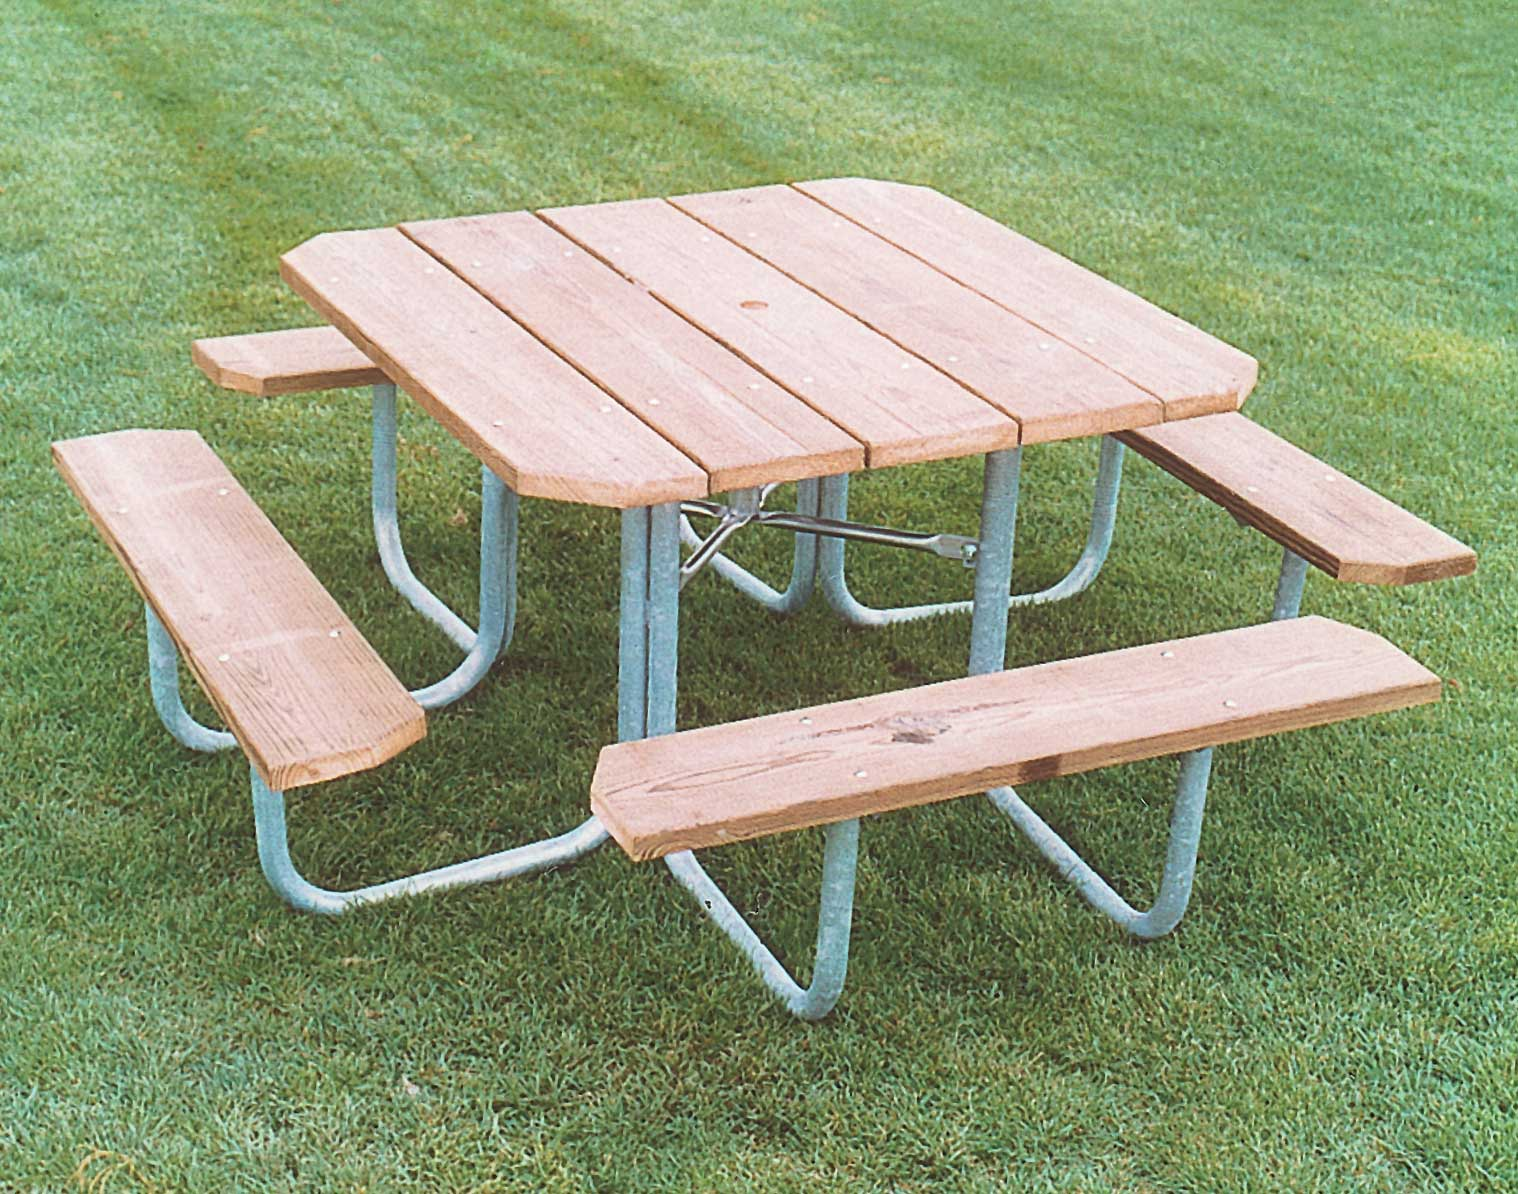 FourSided Picnic Table - Four sided picnic table